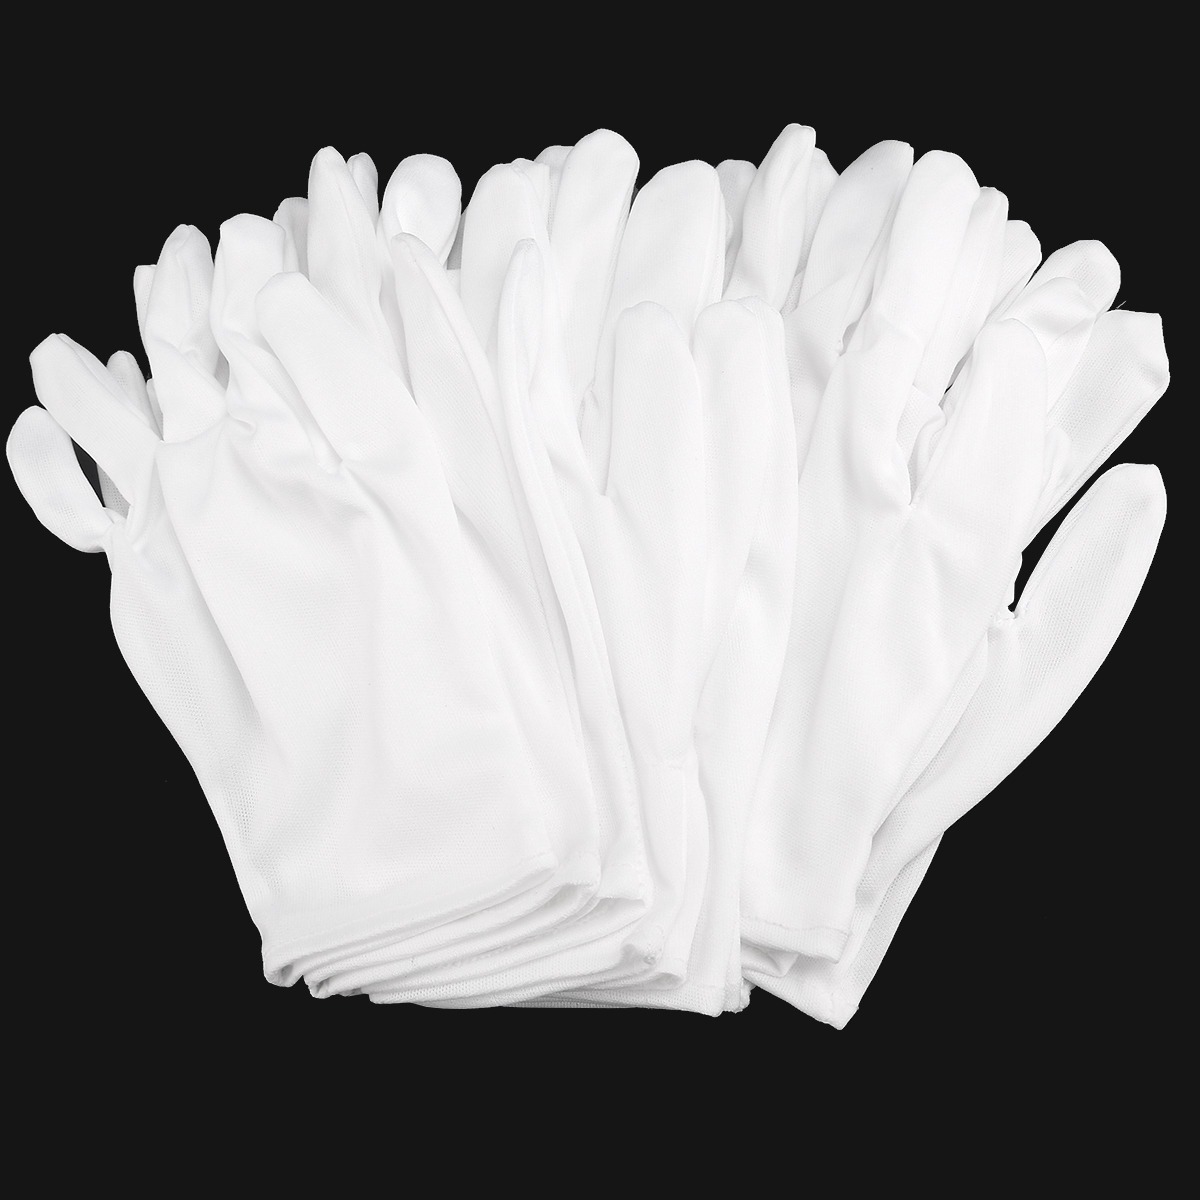 MUSEYA 8pairs/set Lightweight Nylon Protective Glove Film Handling Gloves Working Mittens